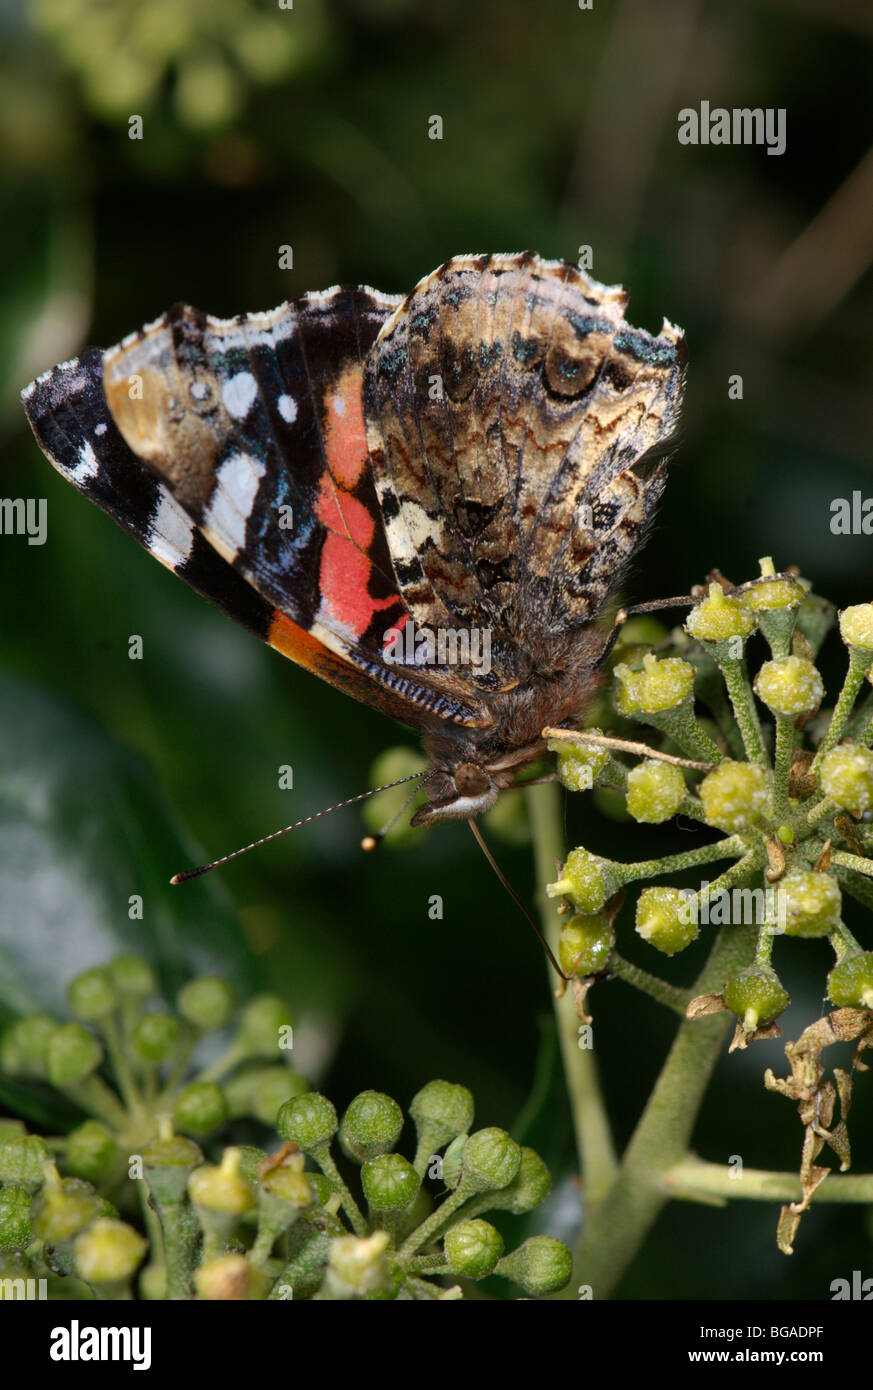 Red admiral butterfly (Vanessa atalanta). showing underwing.. - Stock Image